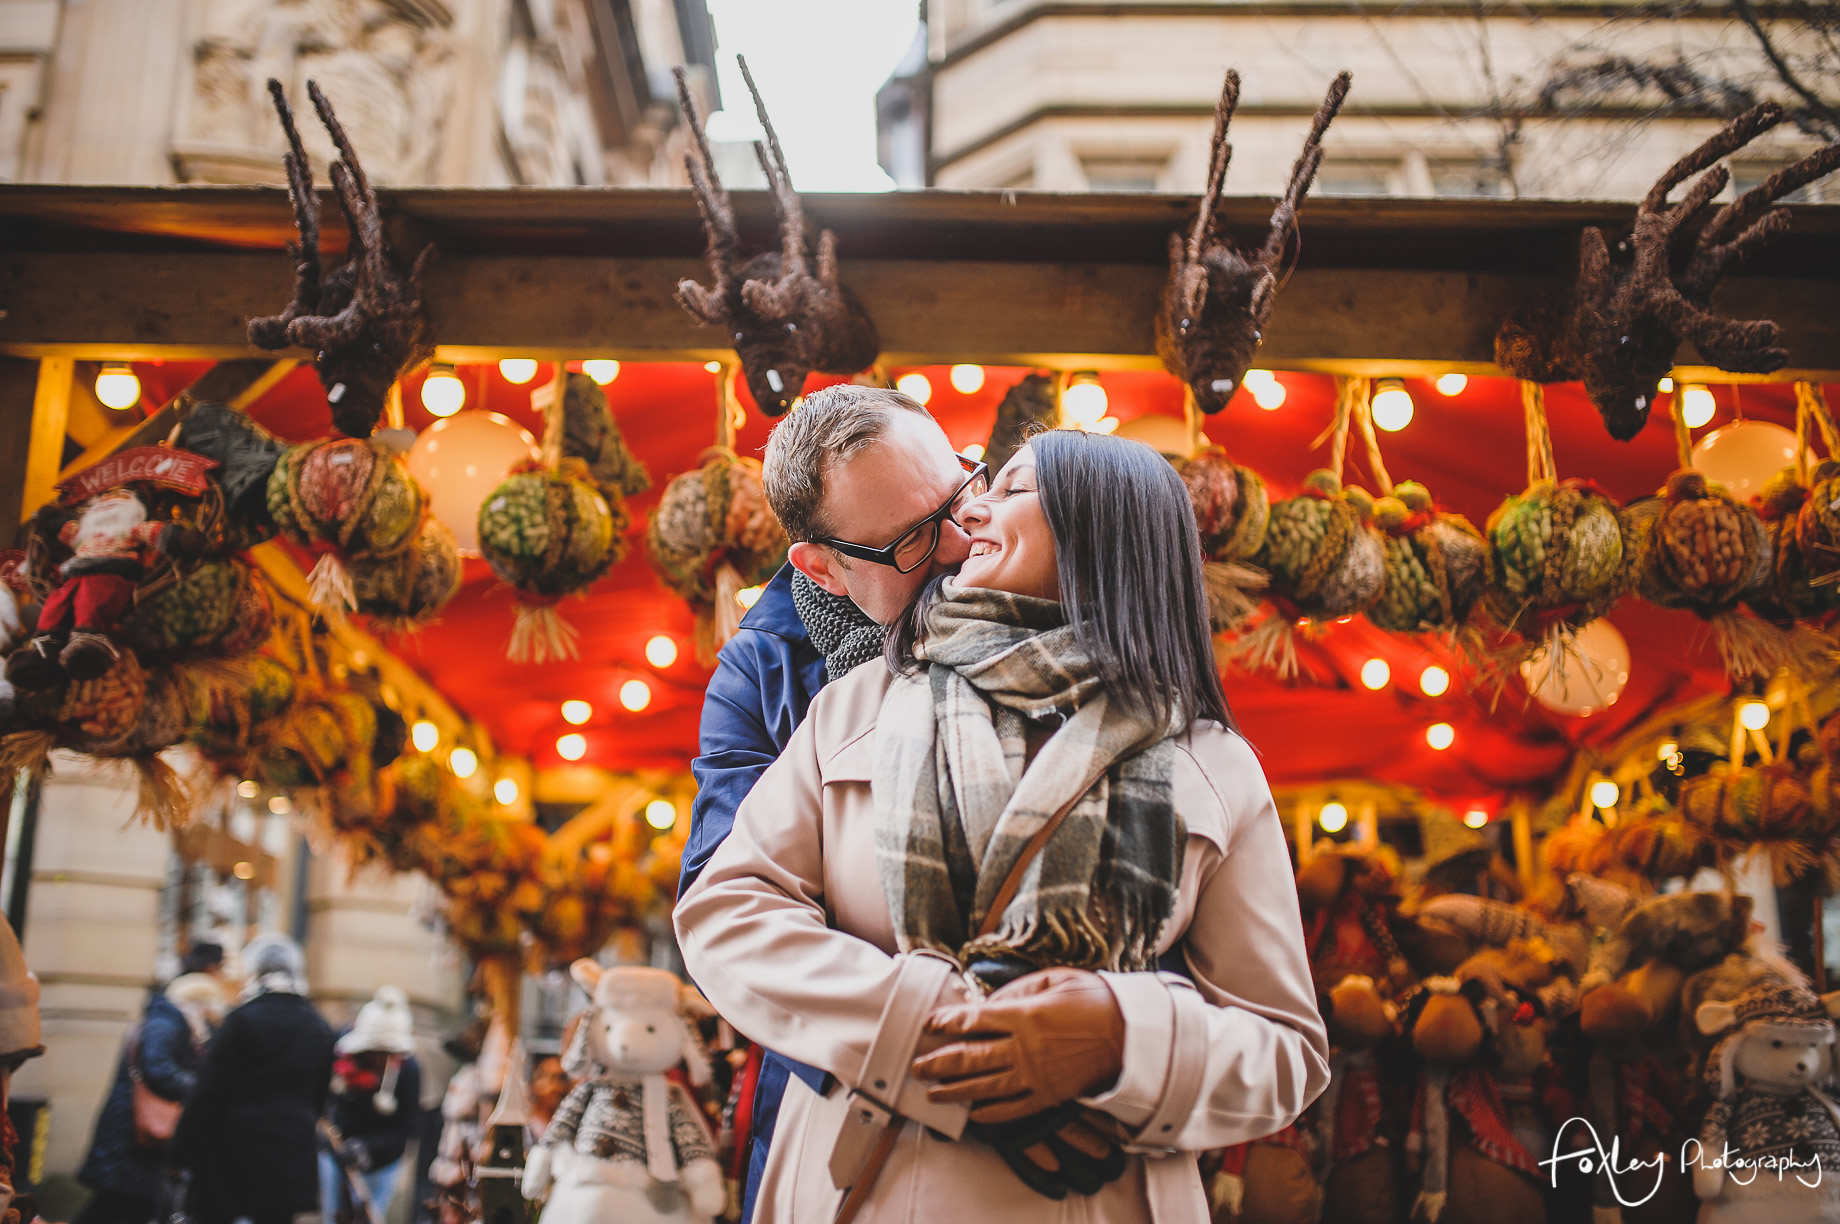 Angela and Andrew's Pre-Wedding Shoot at Manchester Christmas Markets 012